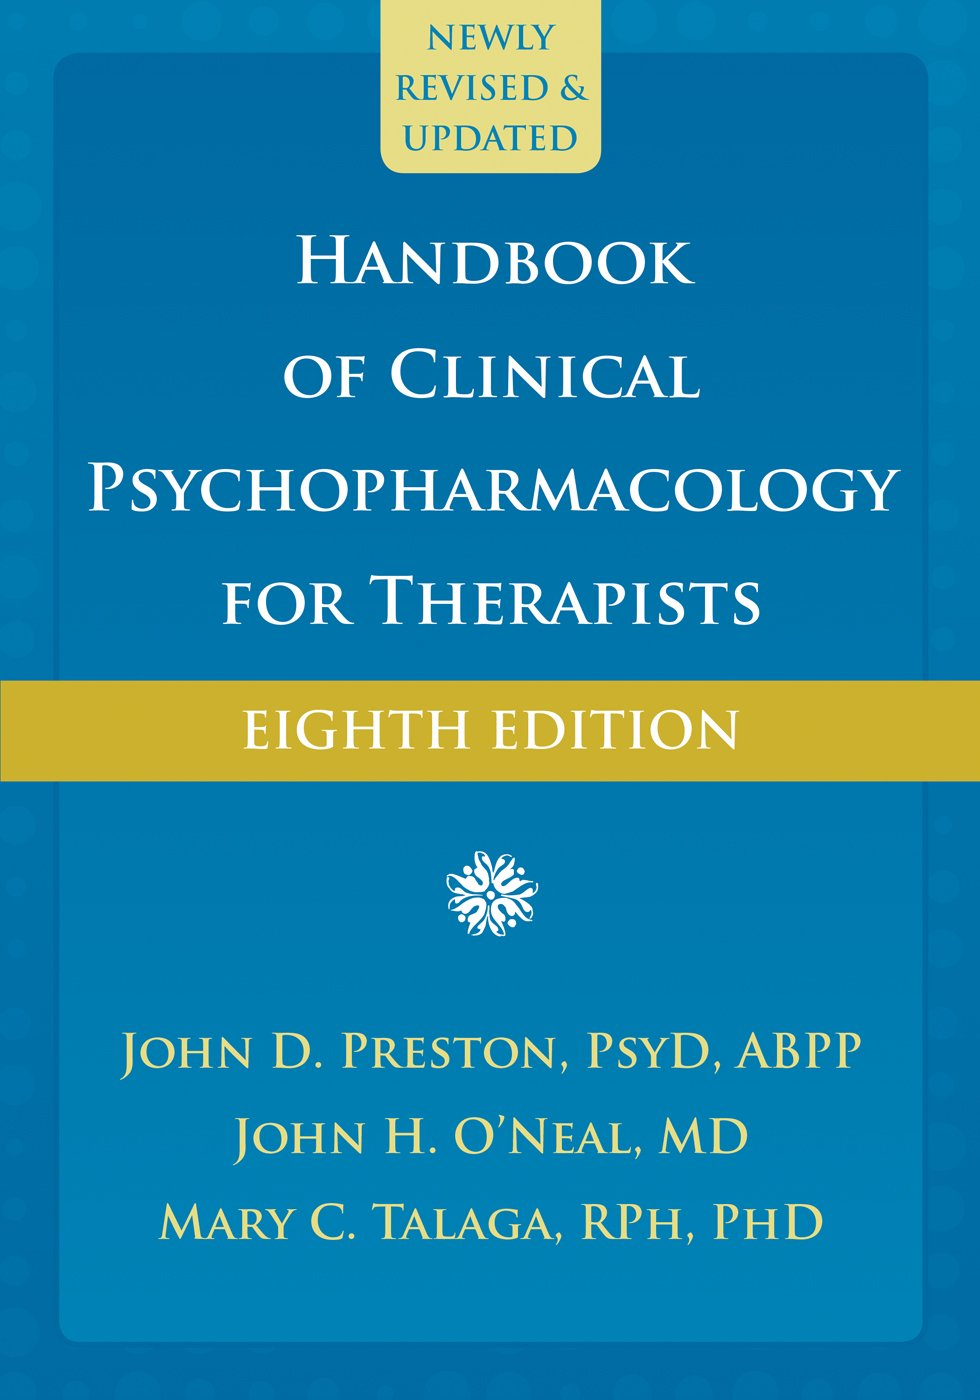 Handbook of Clinical Psychopharmacology for